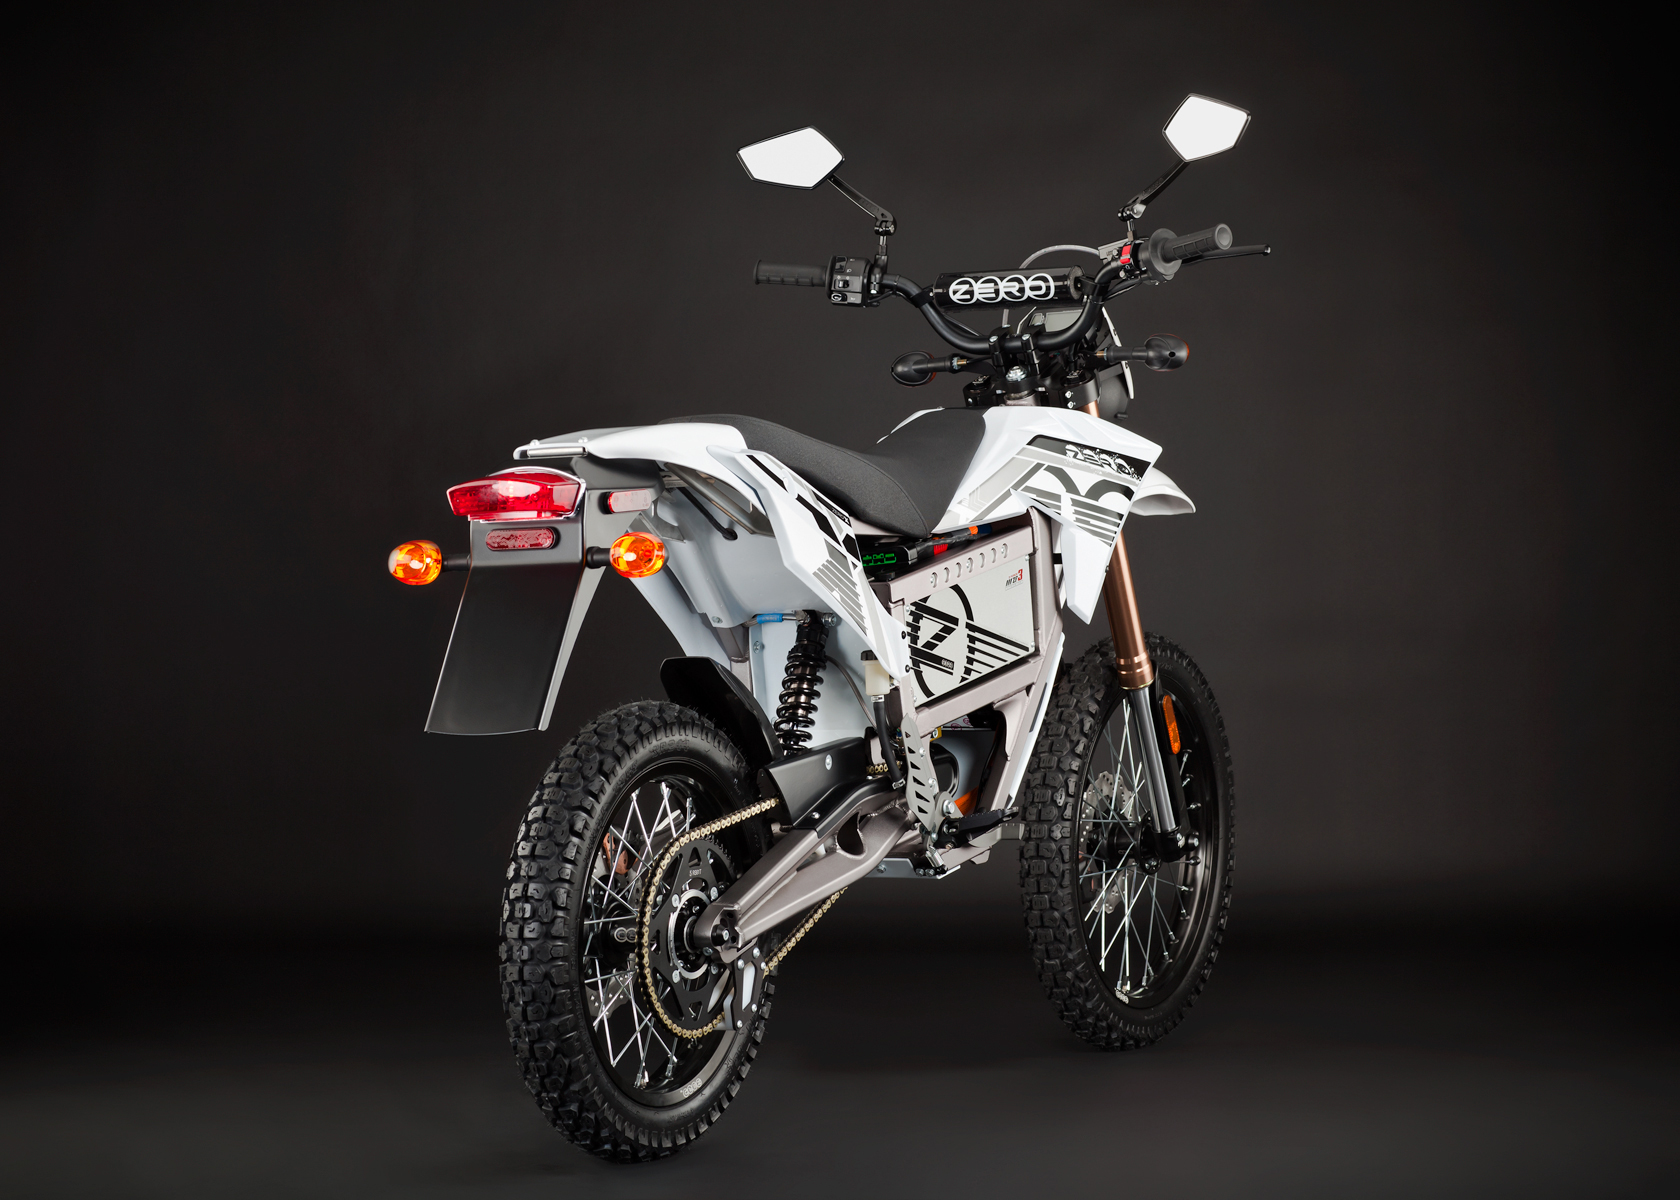 2012 Zero X Electric Motorcycle: Angle Right, Rear View